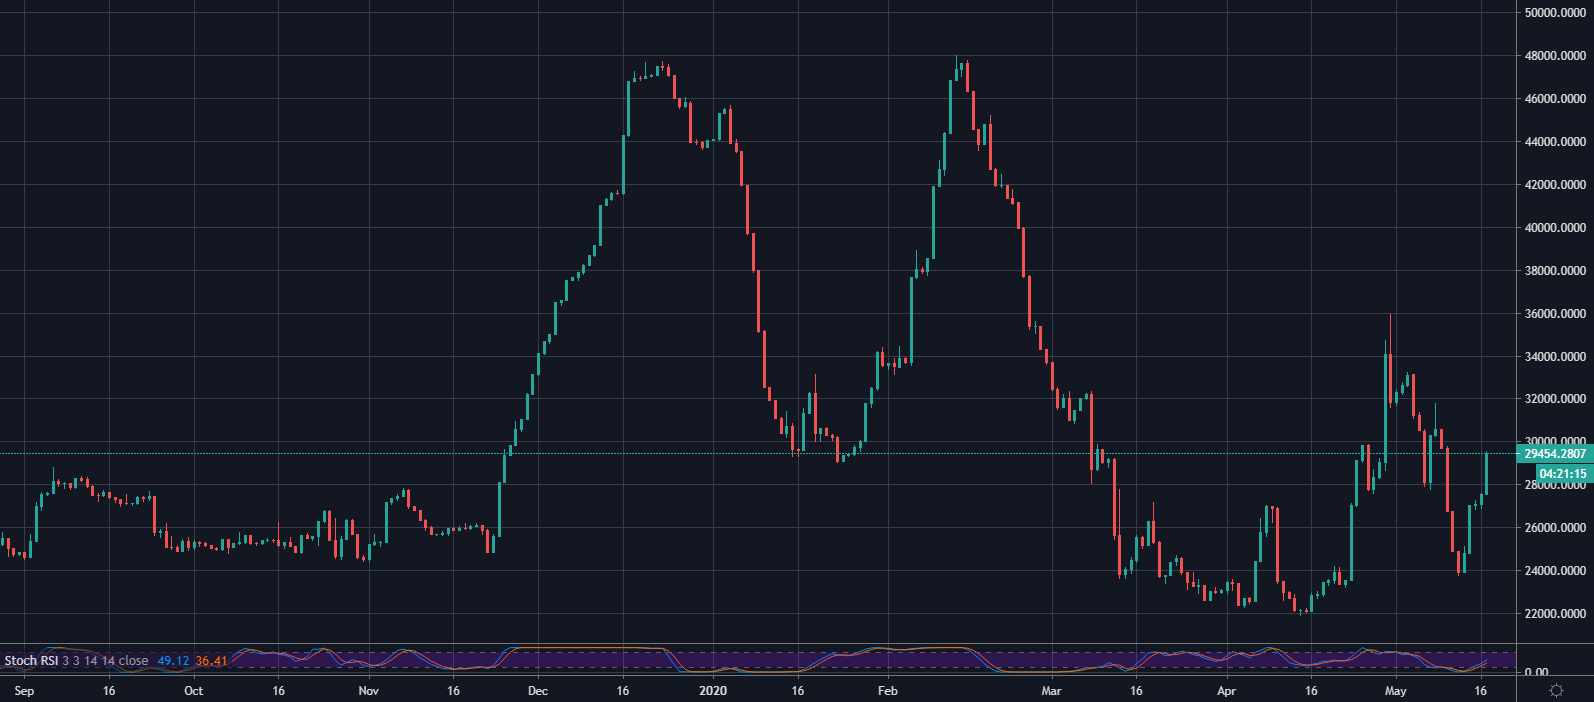 Bitfinex BTC/USD Longs 1D September 2019 - May 2020: TradingView